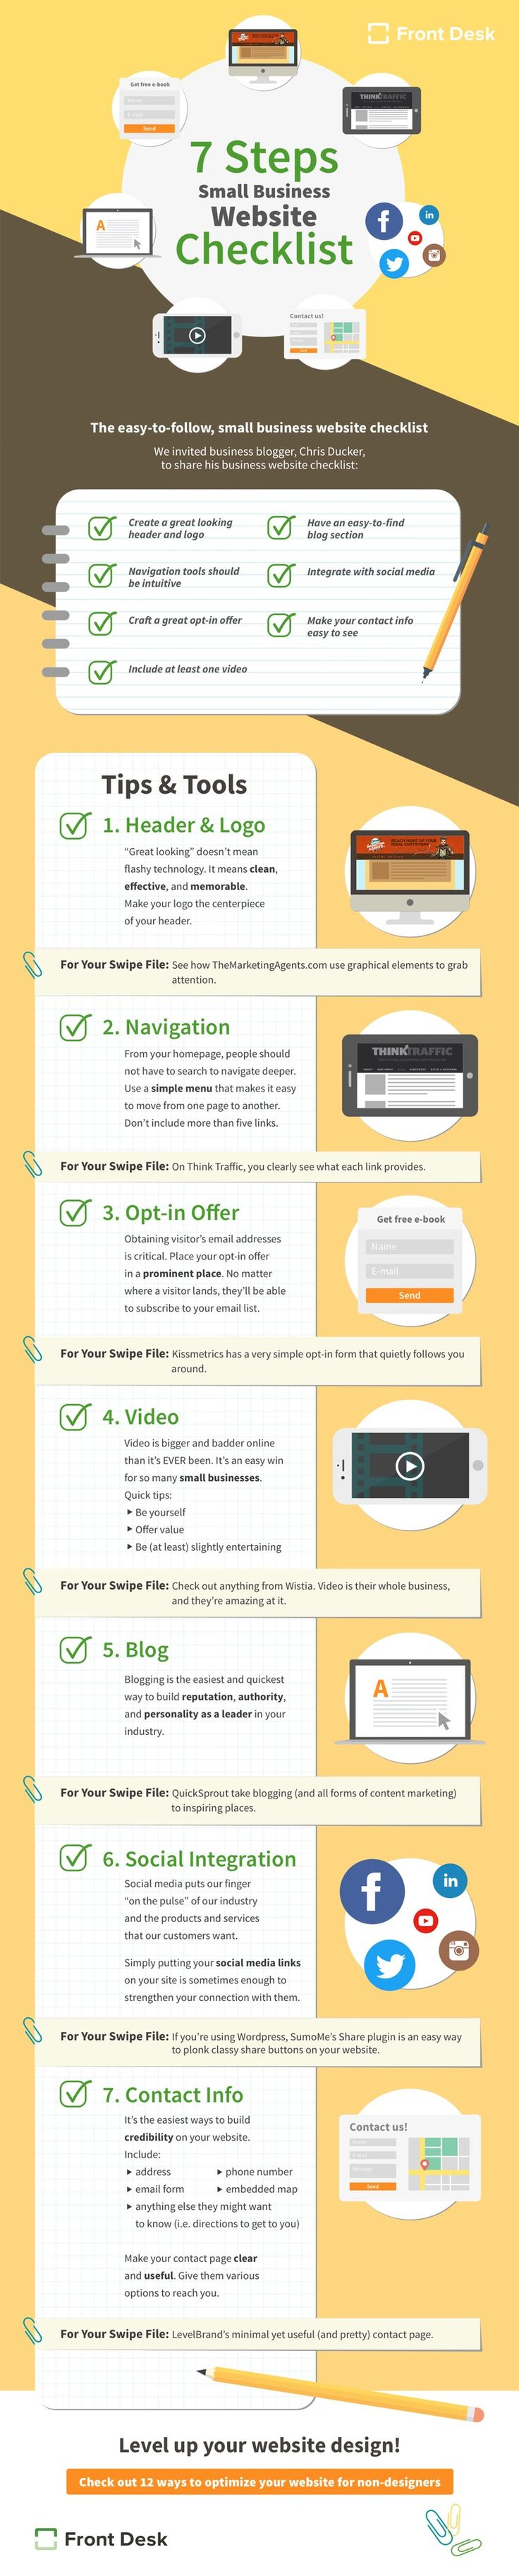 7 Step Checklist To A Successful Small Business Website [Infographic]